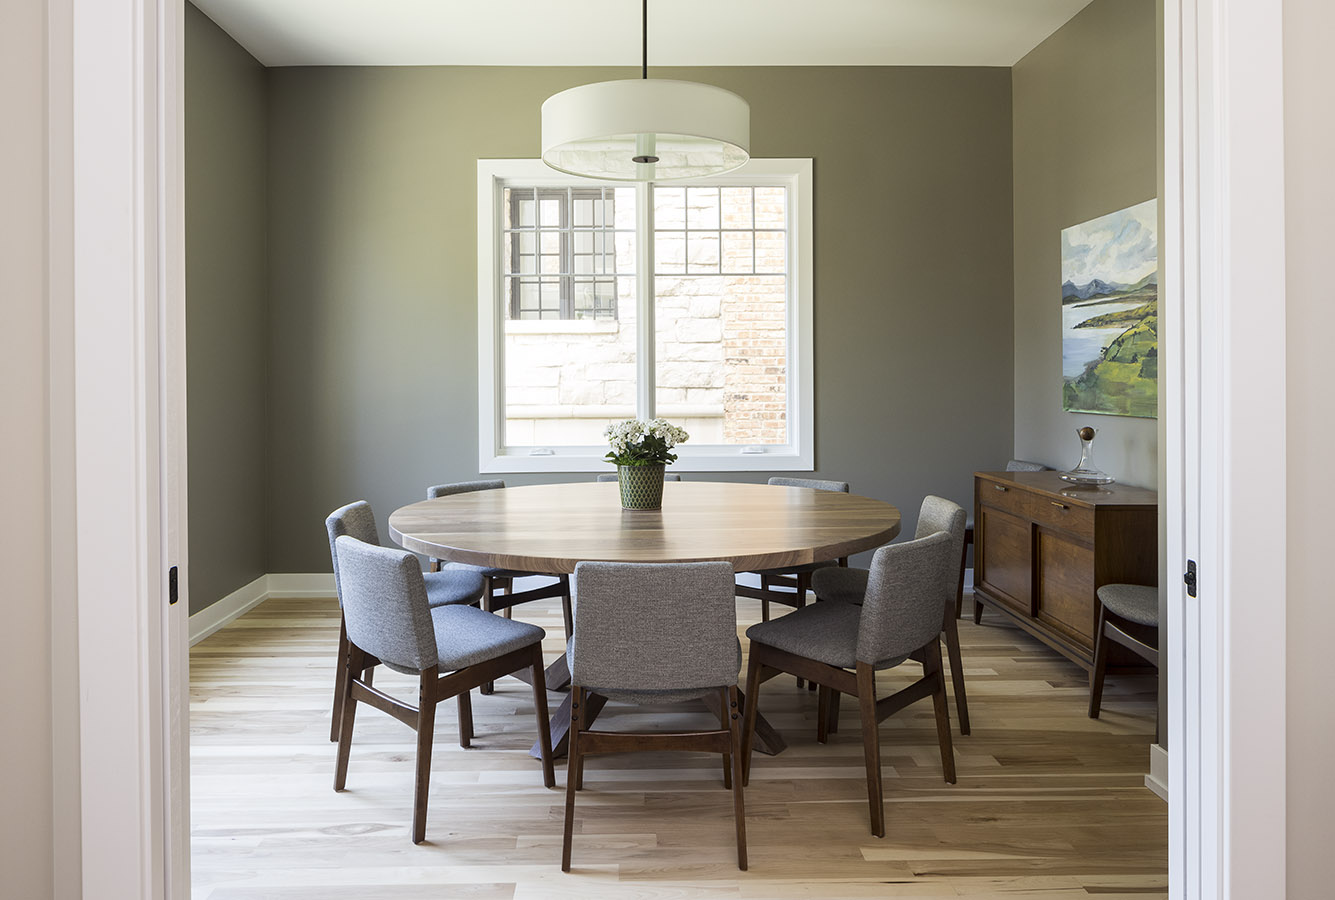 formal dining room with 8 person circular table and pocket doors